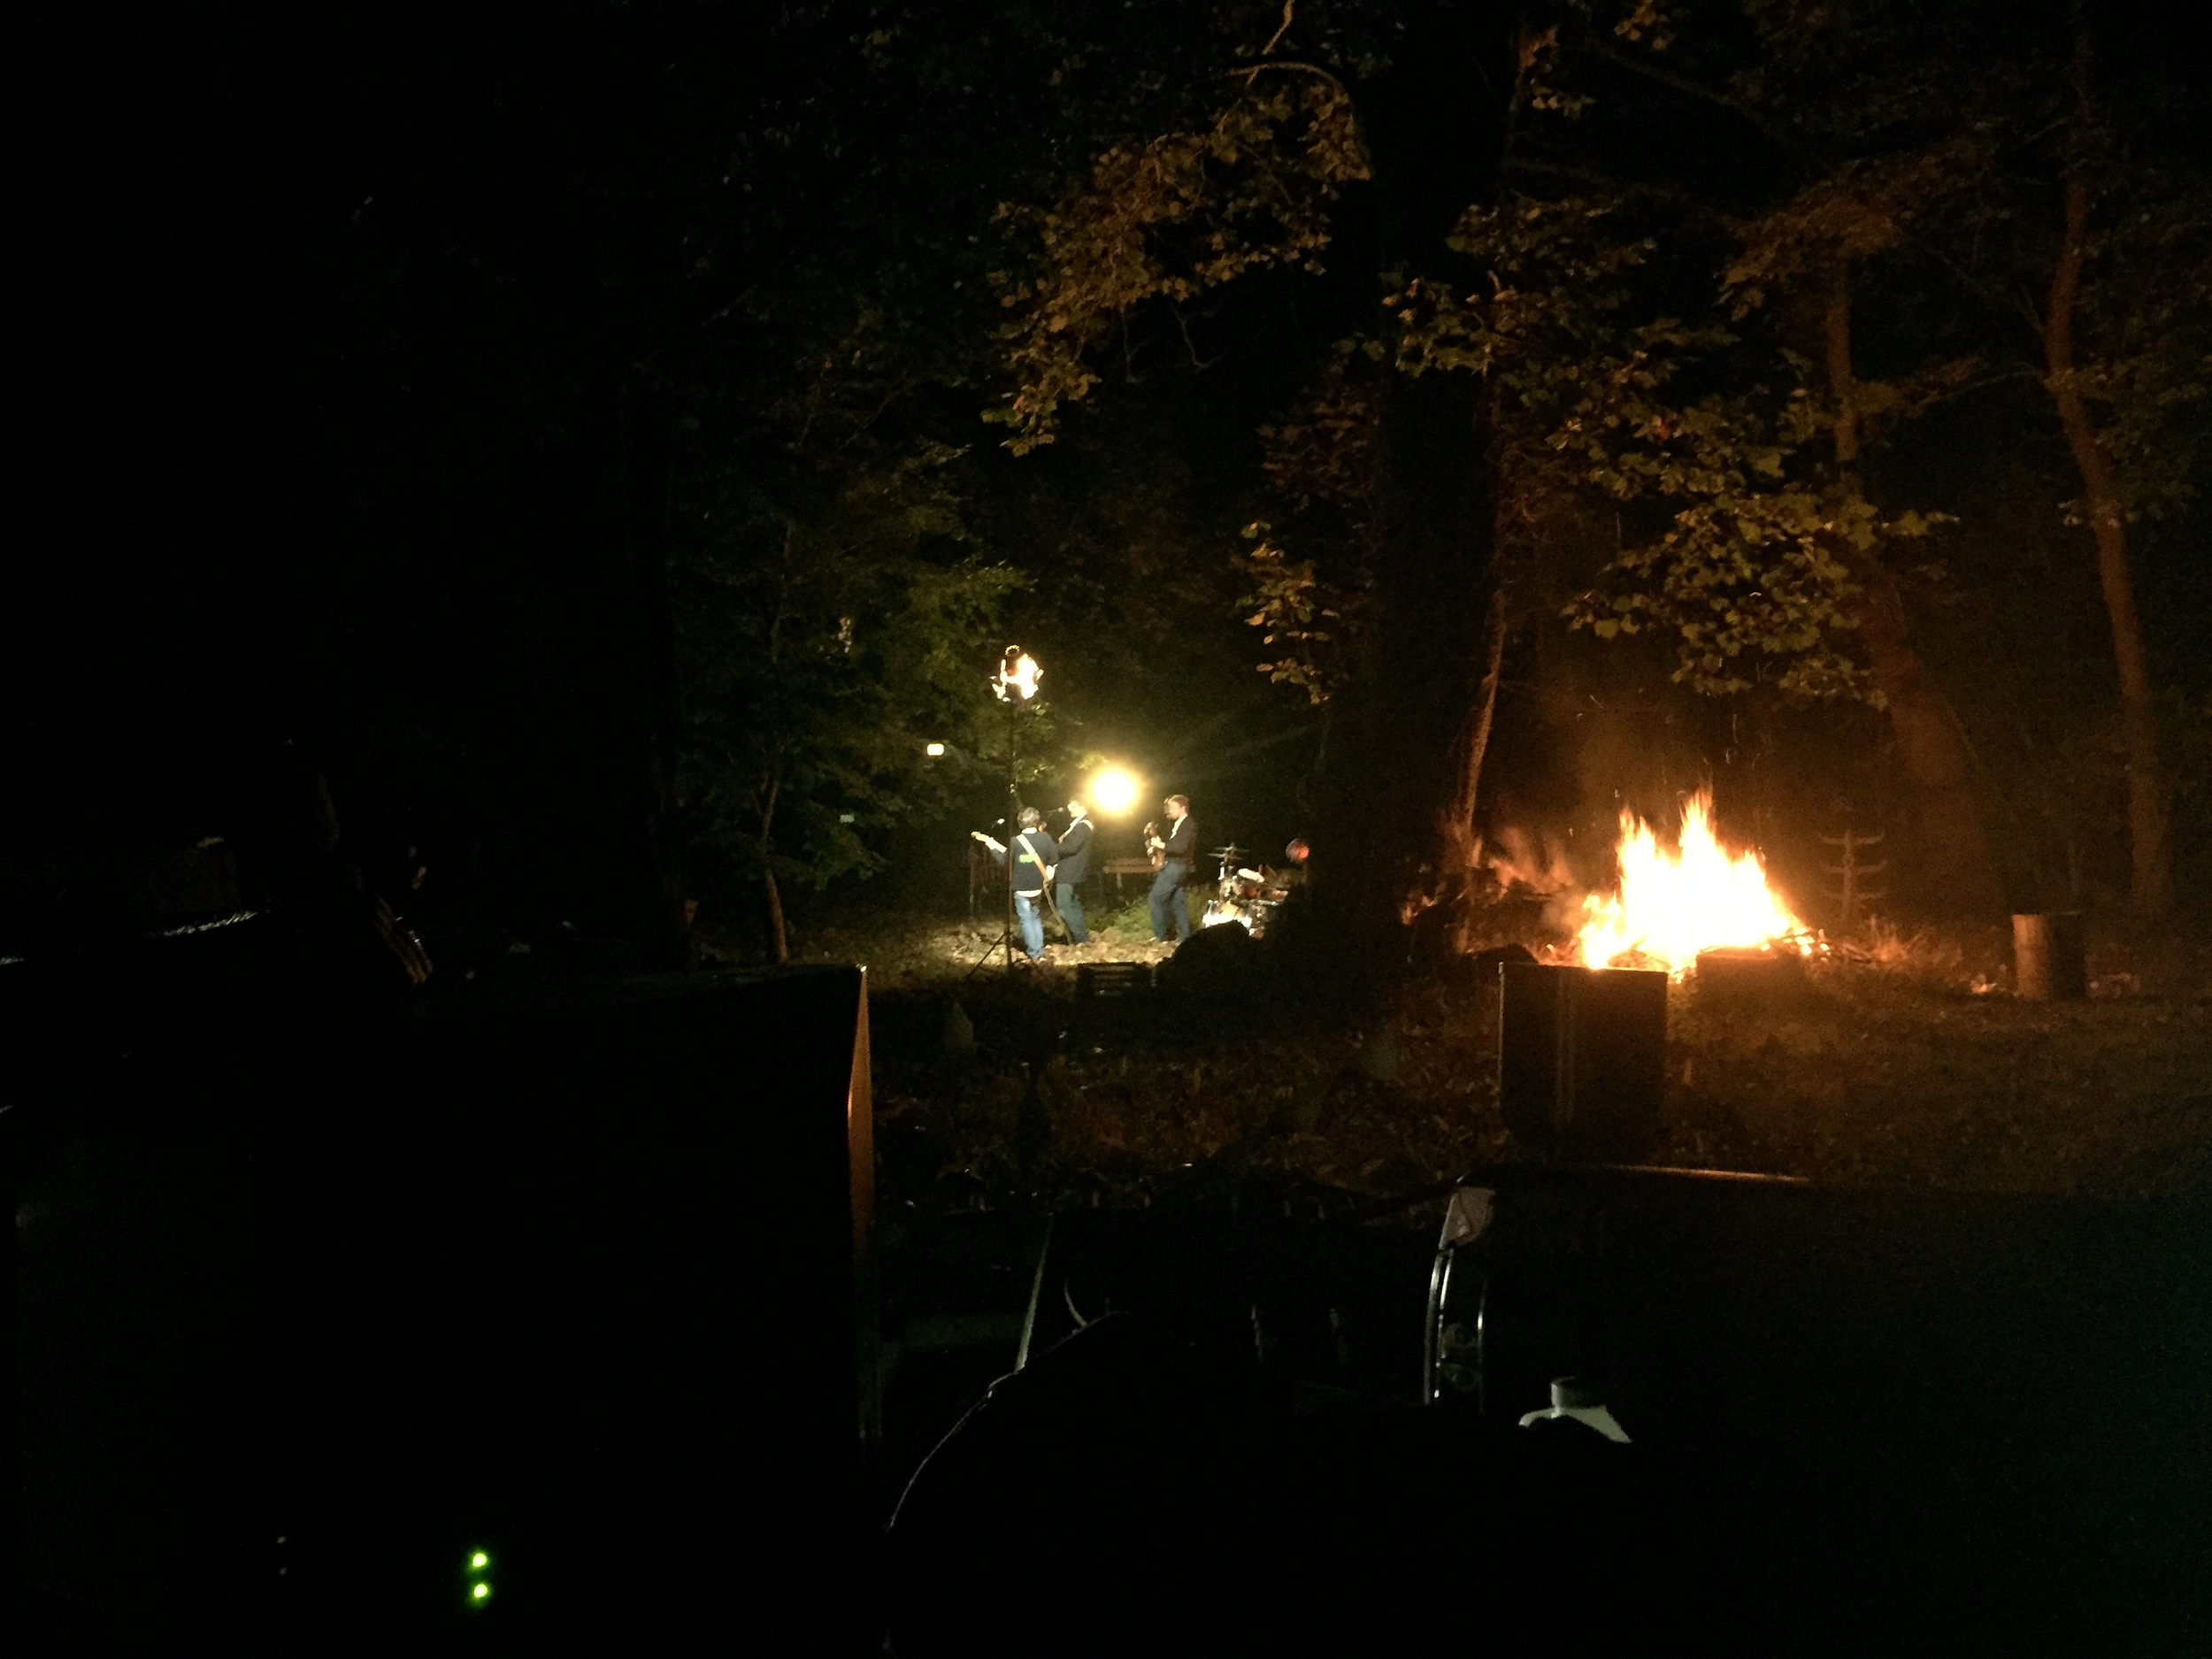 The last part of the shoot was done in the dark at Lenny's Mill. It was quite challenging running the hundreds of feet of power cables, setting up the lights, and maintaining a proper bon fire while barely being able to see what was in front of us.